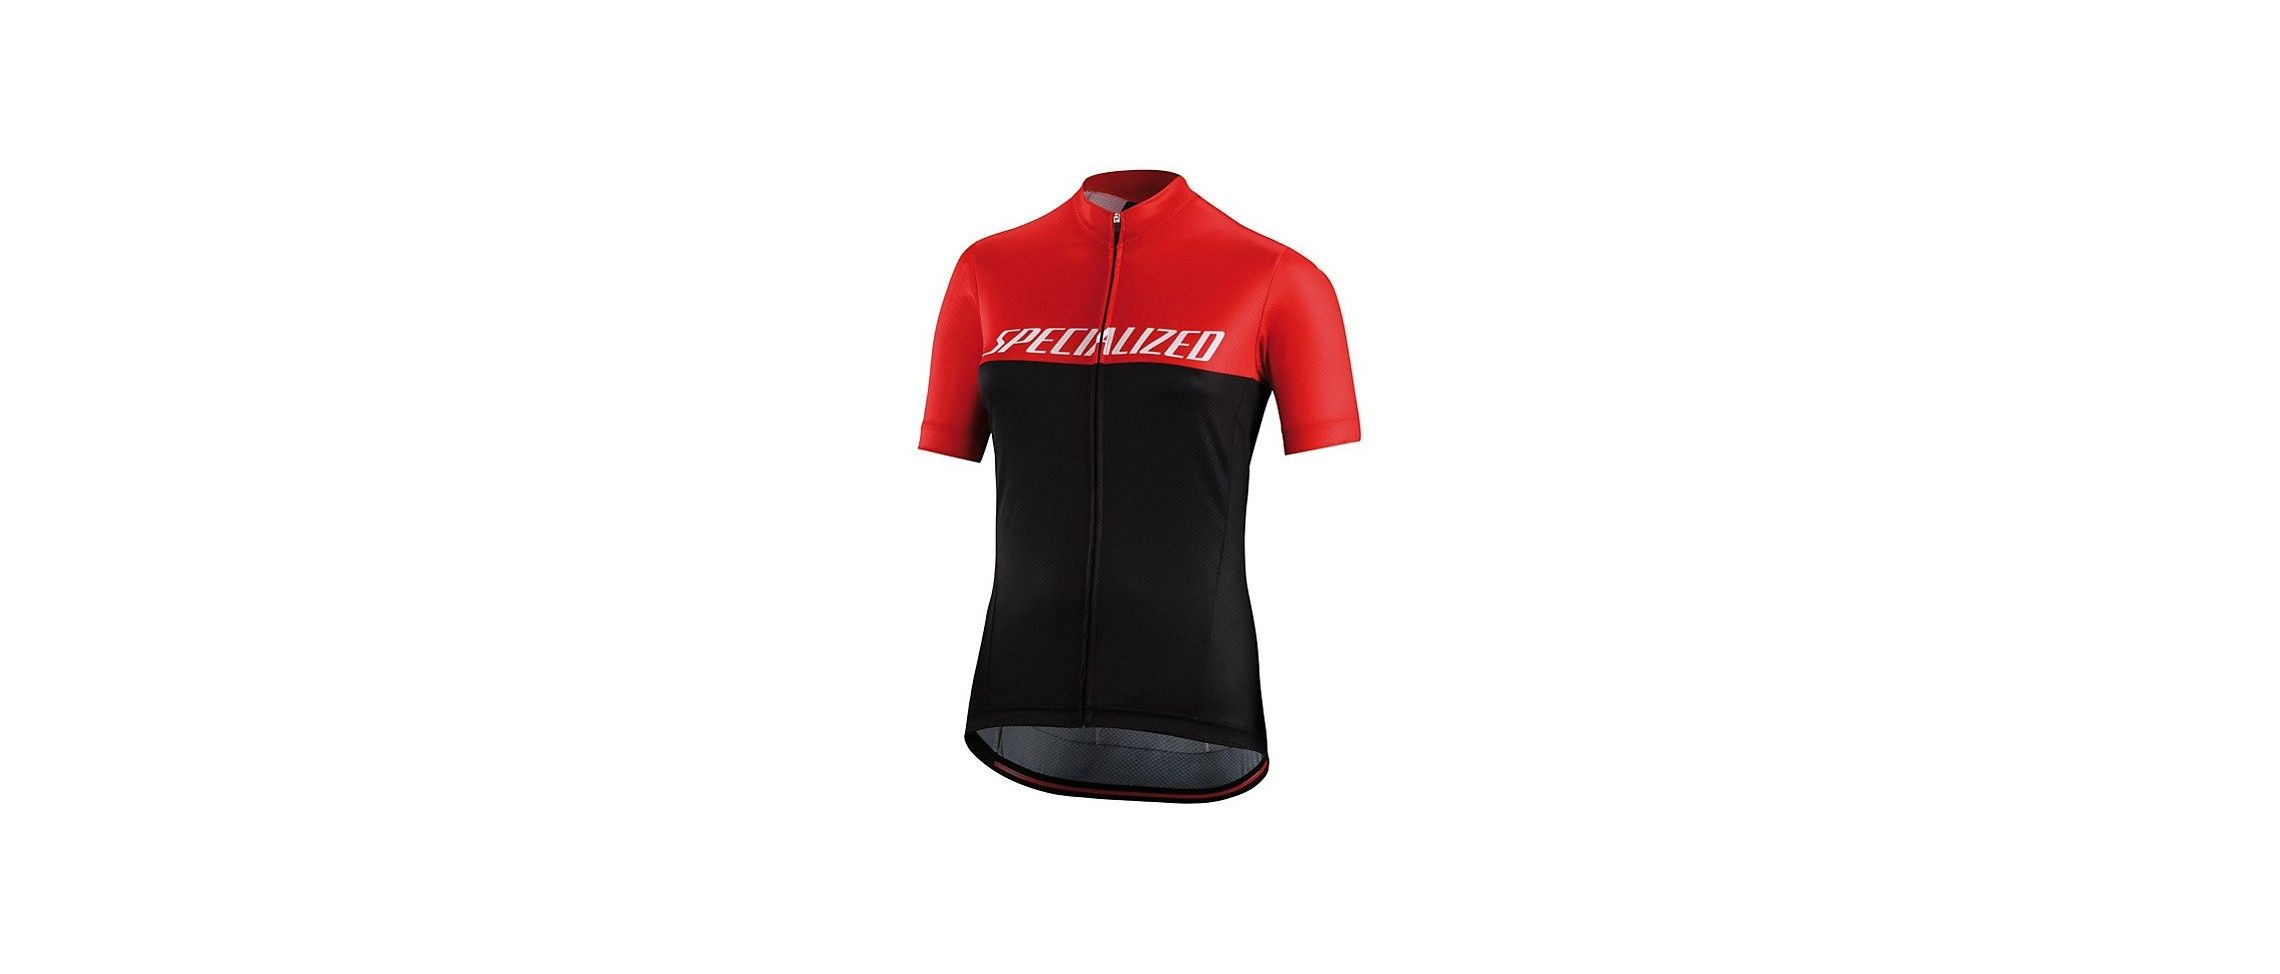 Rbx Comp Logo Team Maillot Mujer Negro/Rojo 1 IBKBike.es